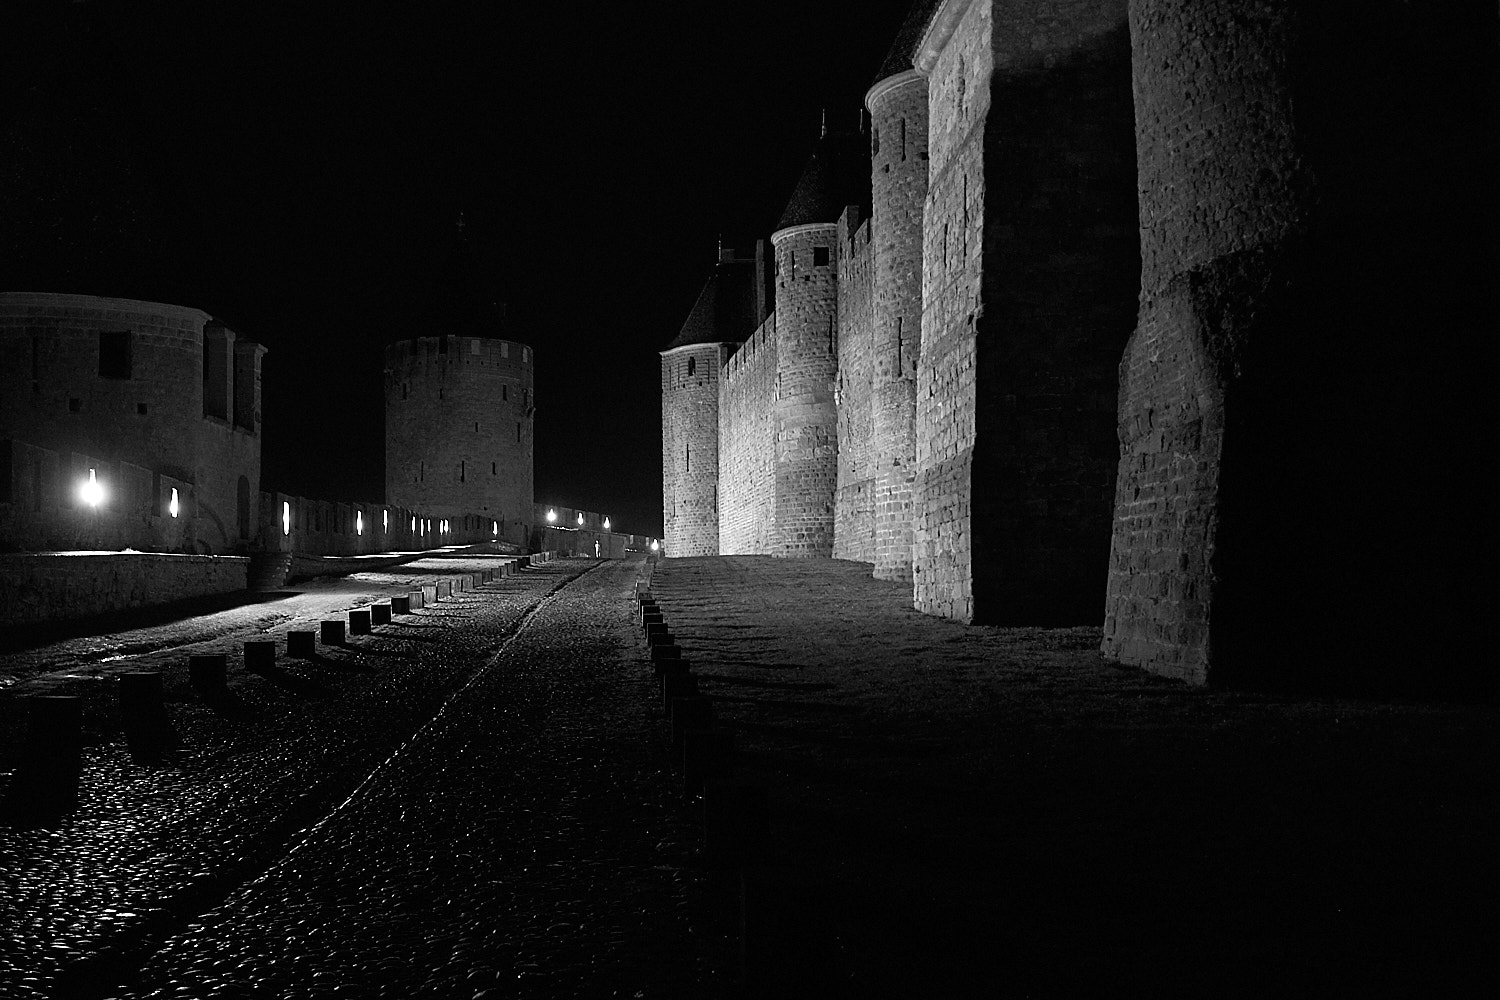 Night view of the walls of the fortress city of Carcassone in south France